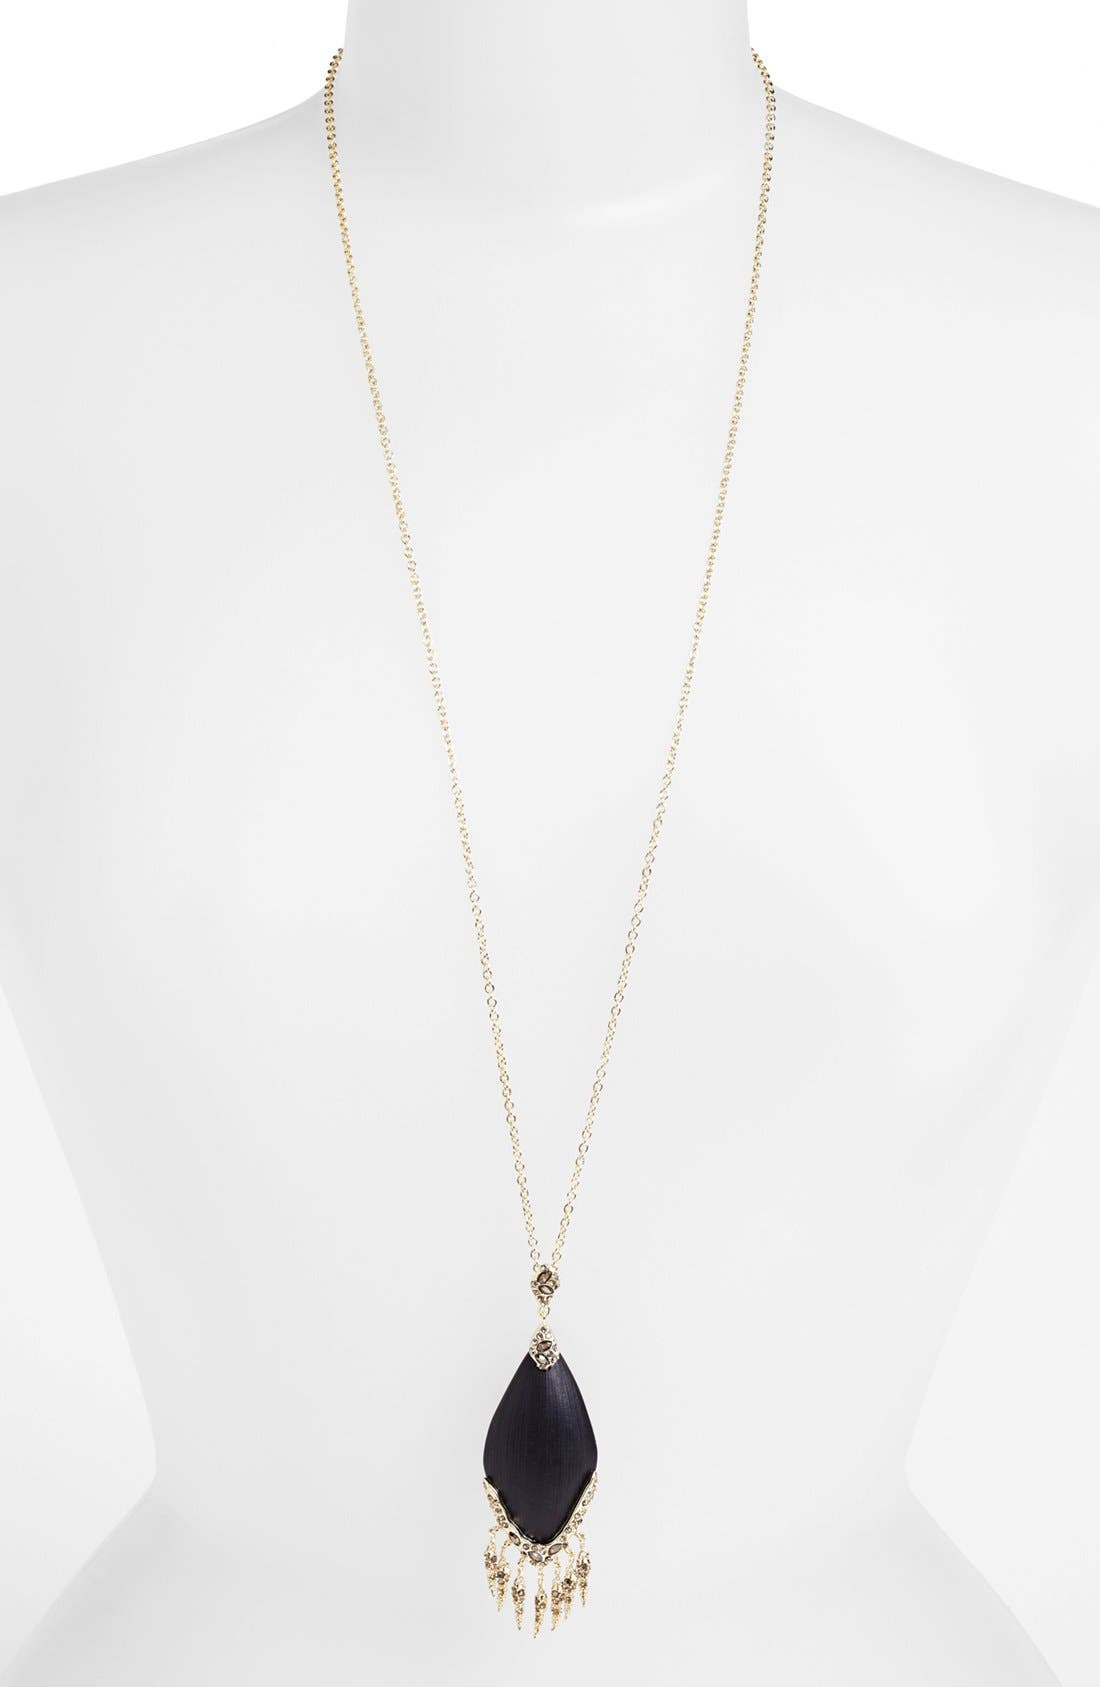 Alternate Image 1 Selected - Alexis Bittar 'Lucite® - Neo Bohemian' Long Fringe Pendant Necklace